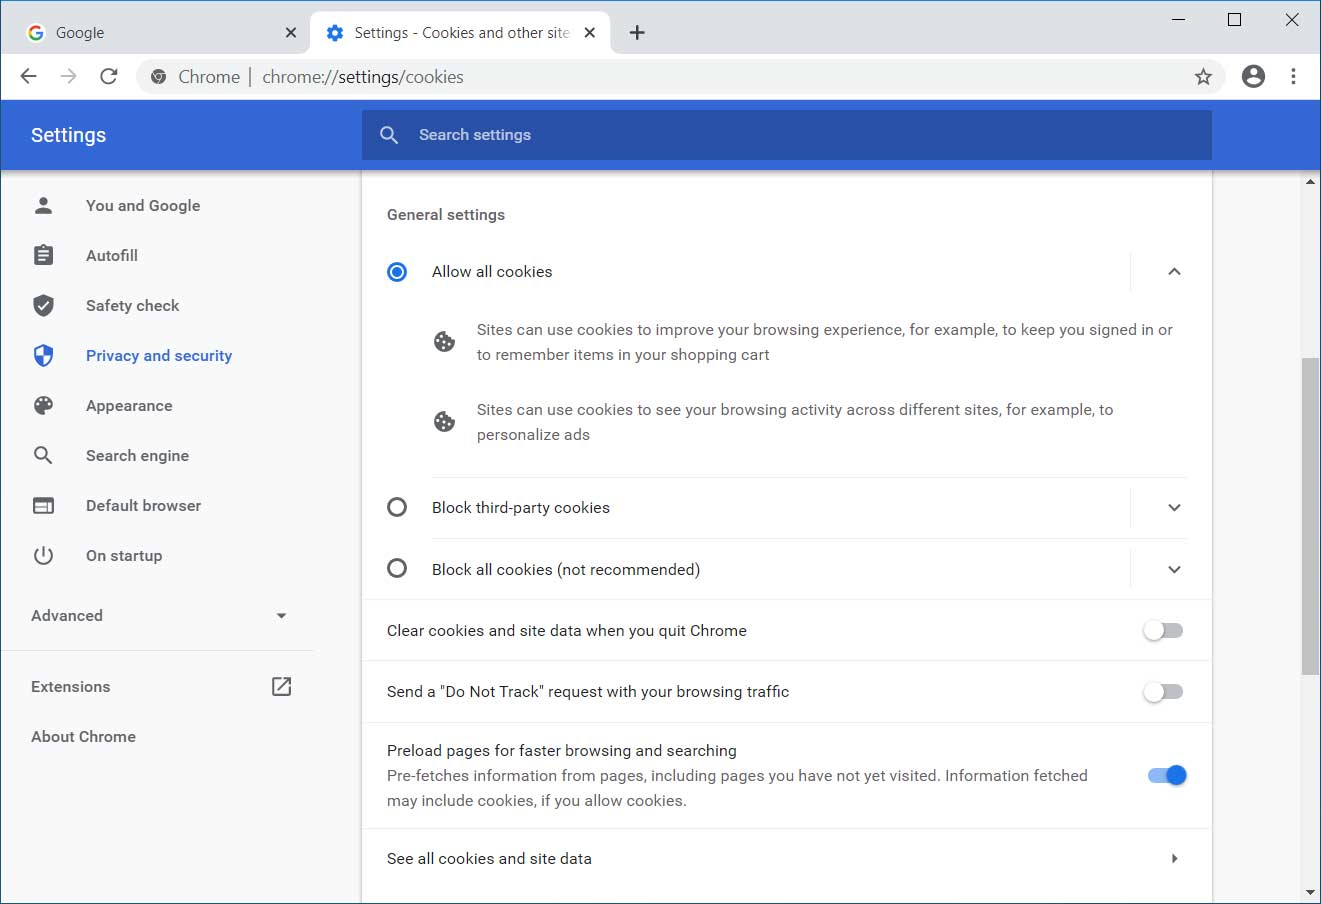 Chrome 83 released massive security and privacy upgrades